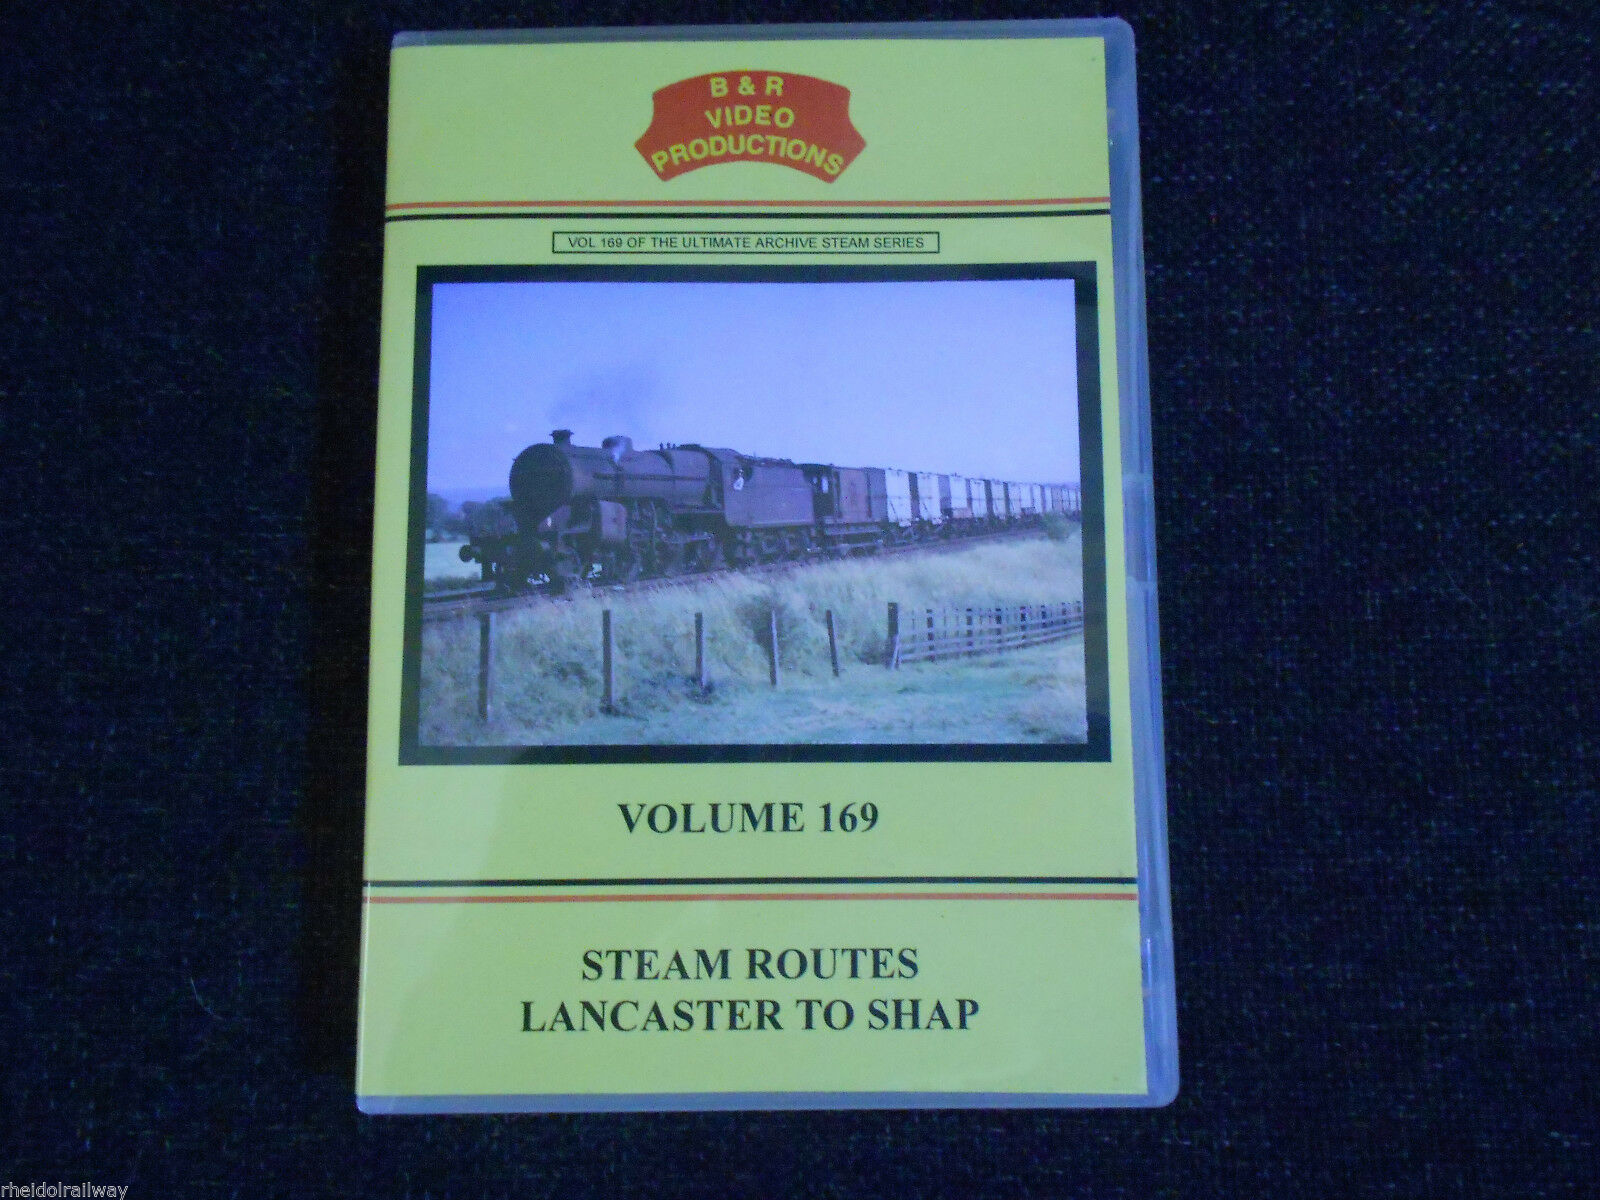 Heysham Line, Hest Bank, Steam Routes Lancaster to Shap, B & R Volume 169 DVD